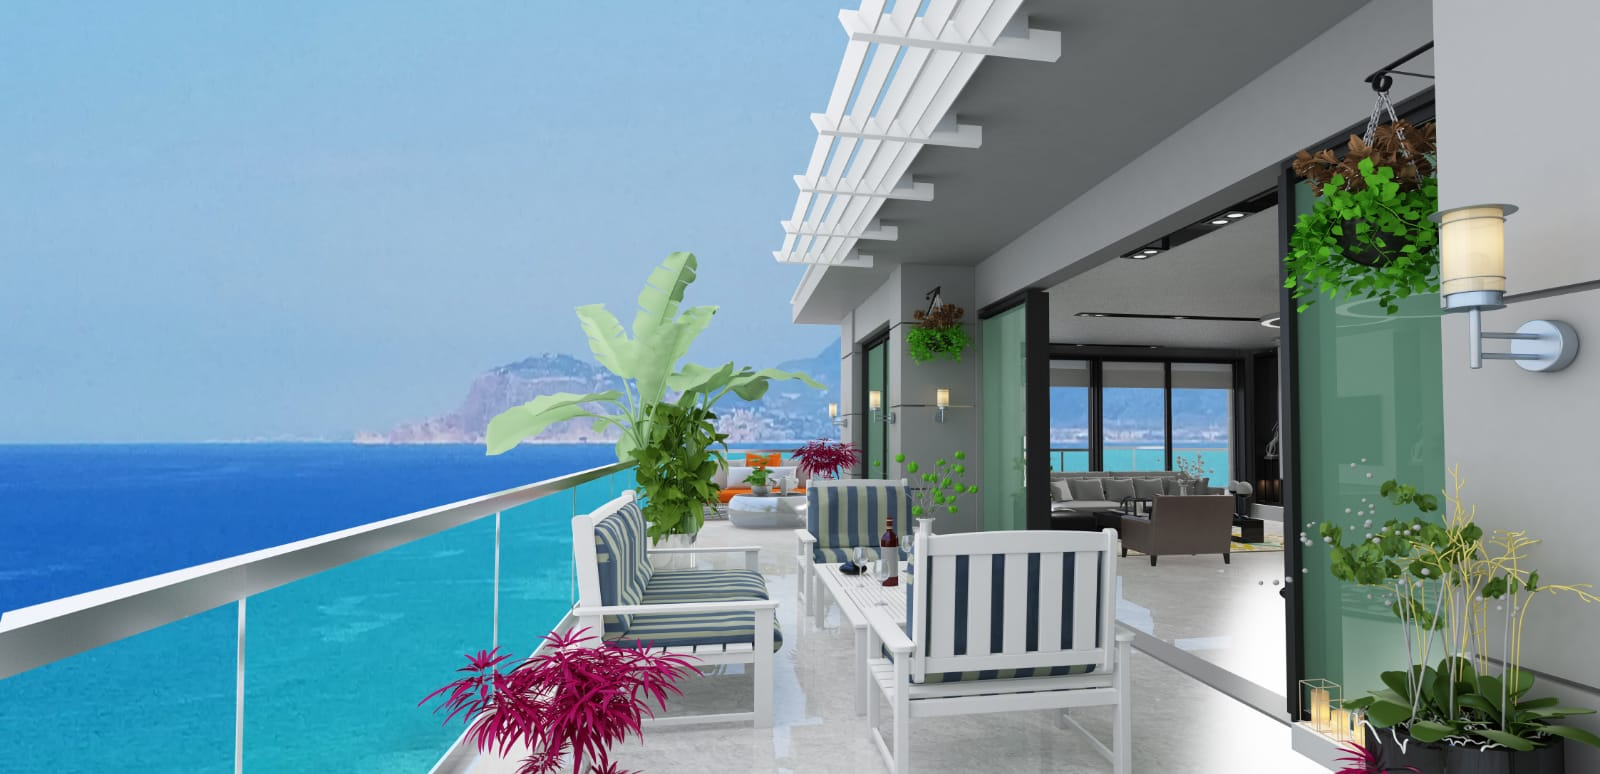 SUNSET AQUA, A jewel in the crown of new beach front developments